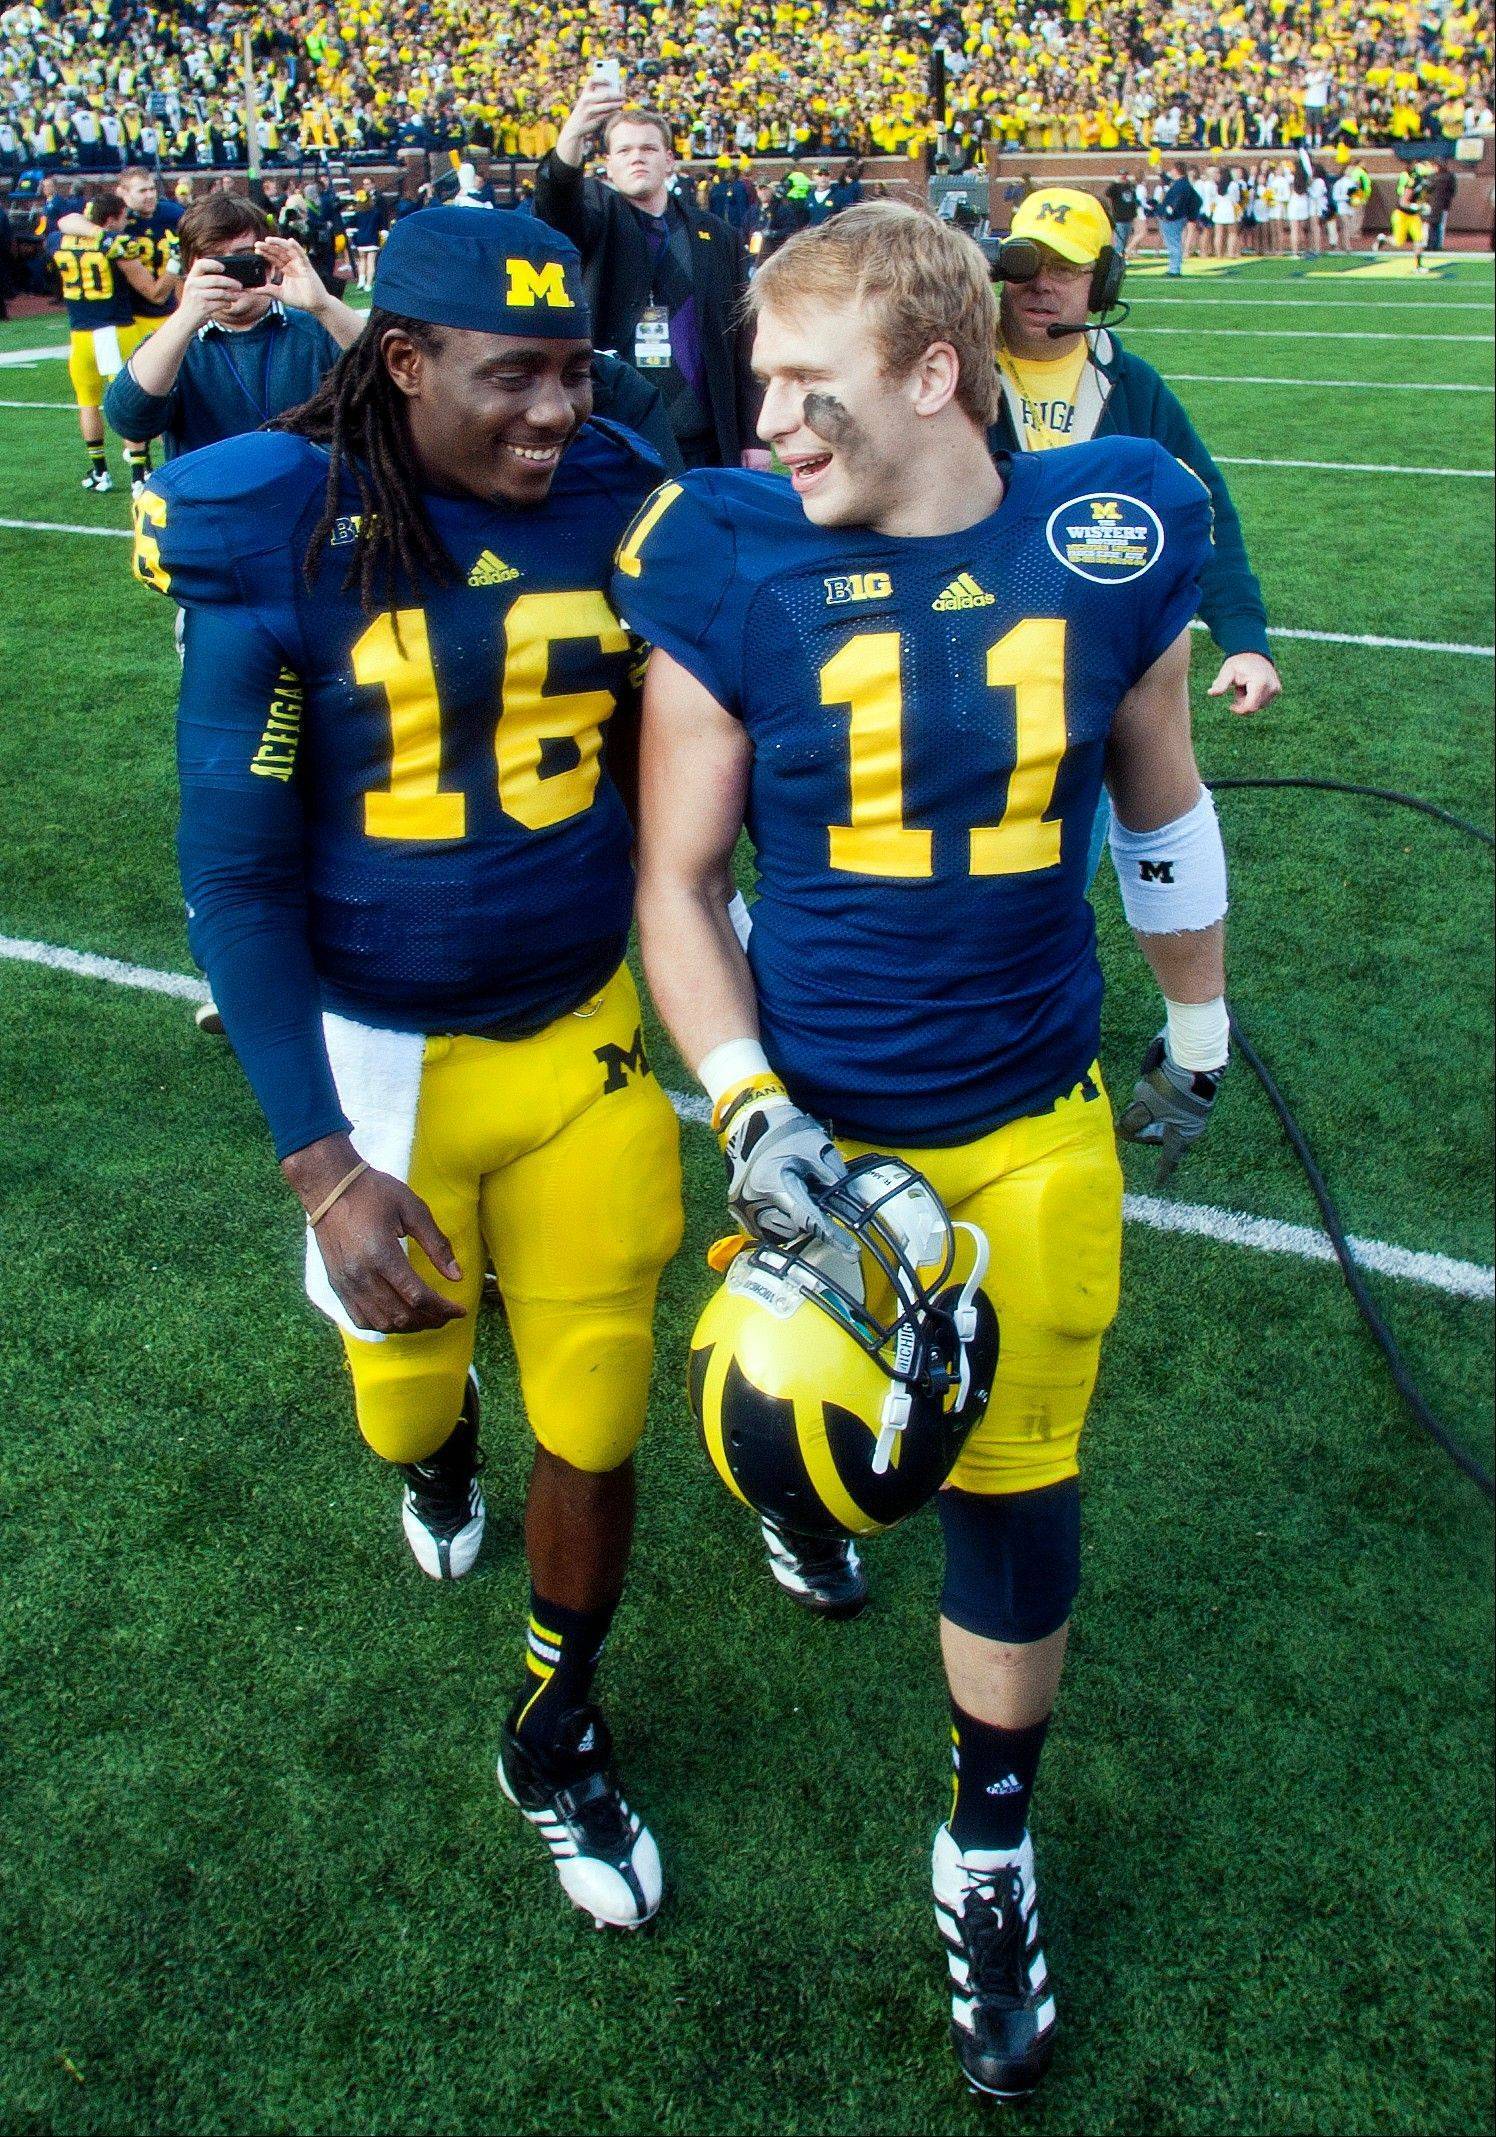 Michigan co-captains, quarterback Denard Robinson and safety Jordan Kovacs, walk off the field Saturday after playing their final home game against Iowa. Michigan won 42-17.